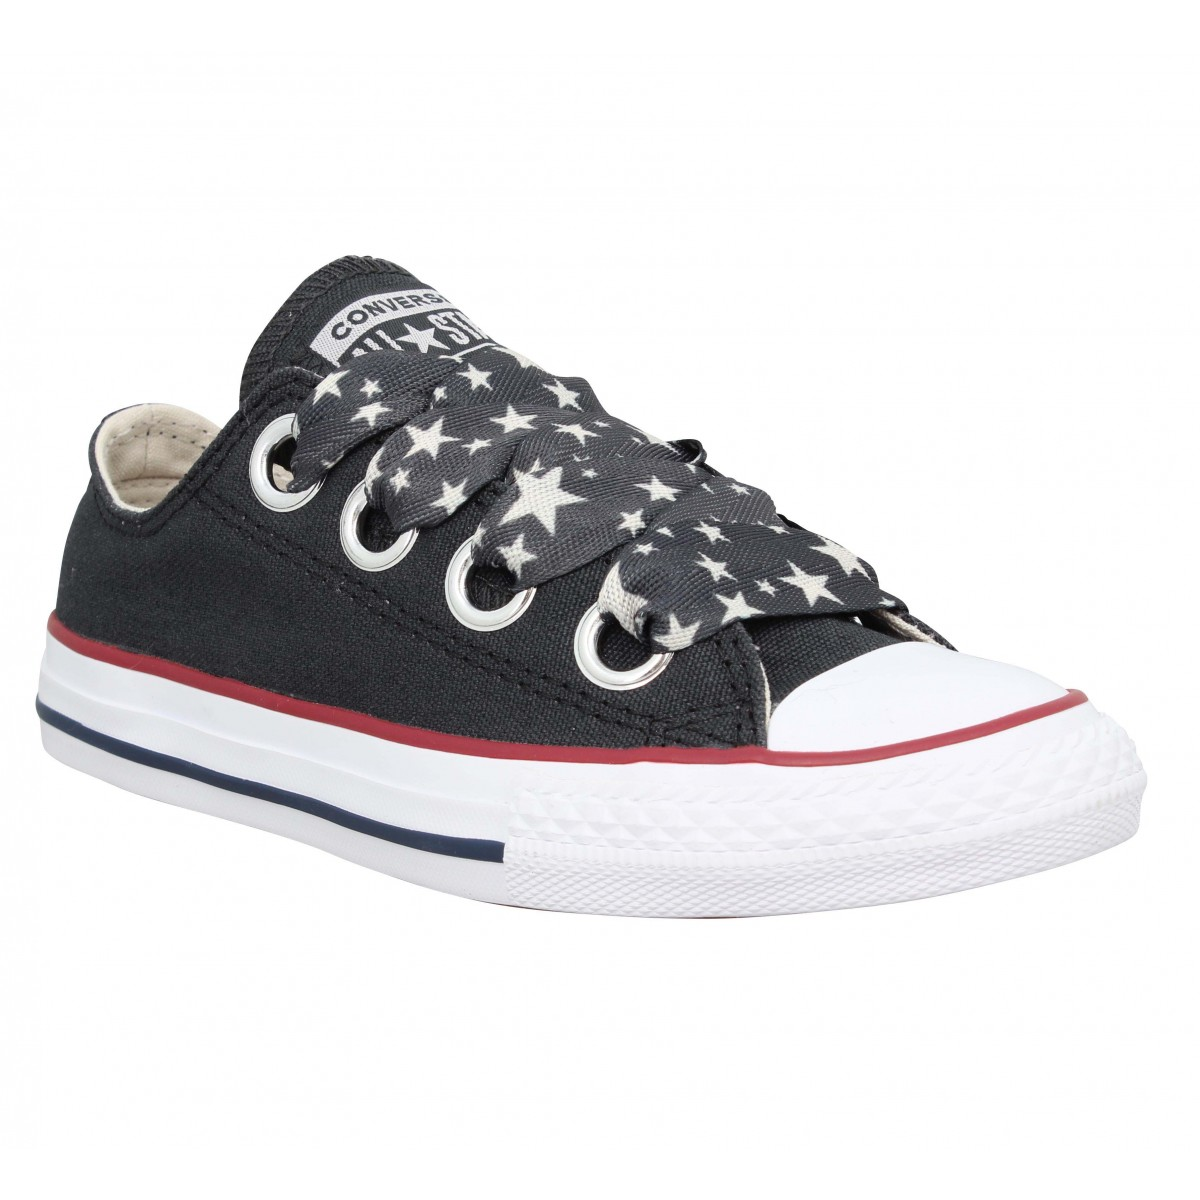 Baskets CONVERSE Chuck Taylor All Star Big Eyelets Enfant Noir